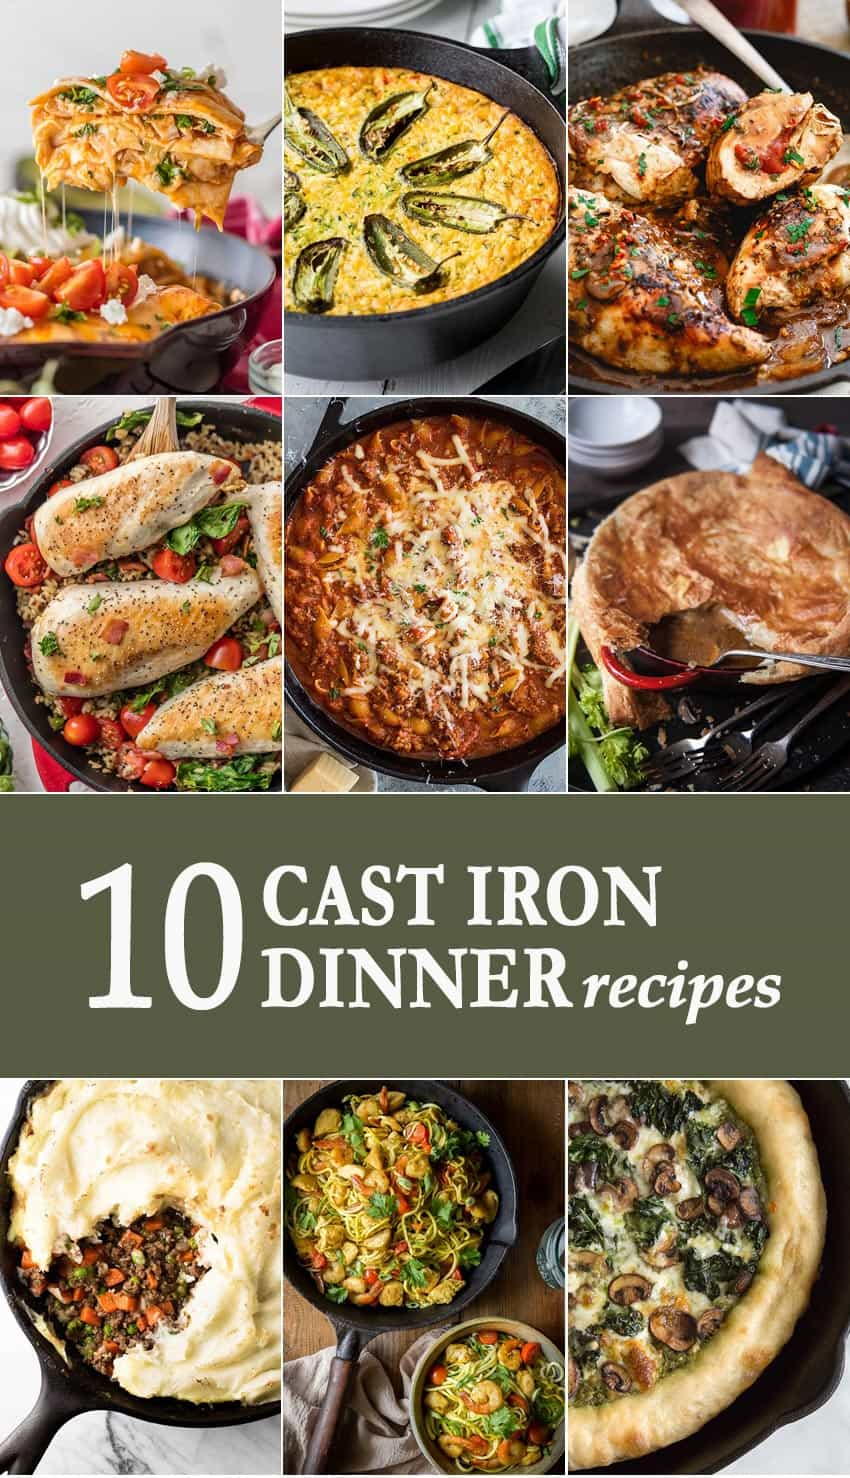 10 Cast Iron Dinner Recipes